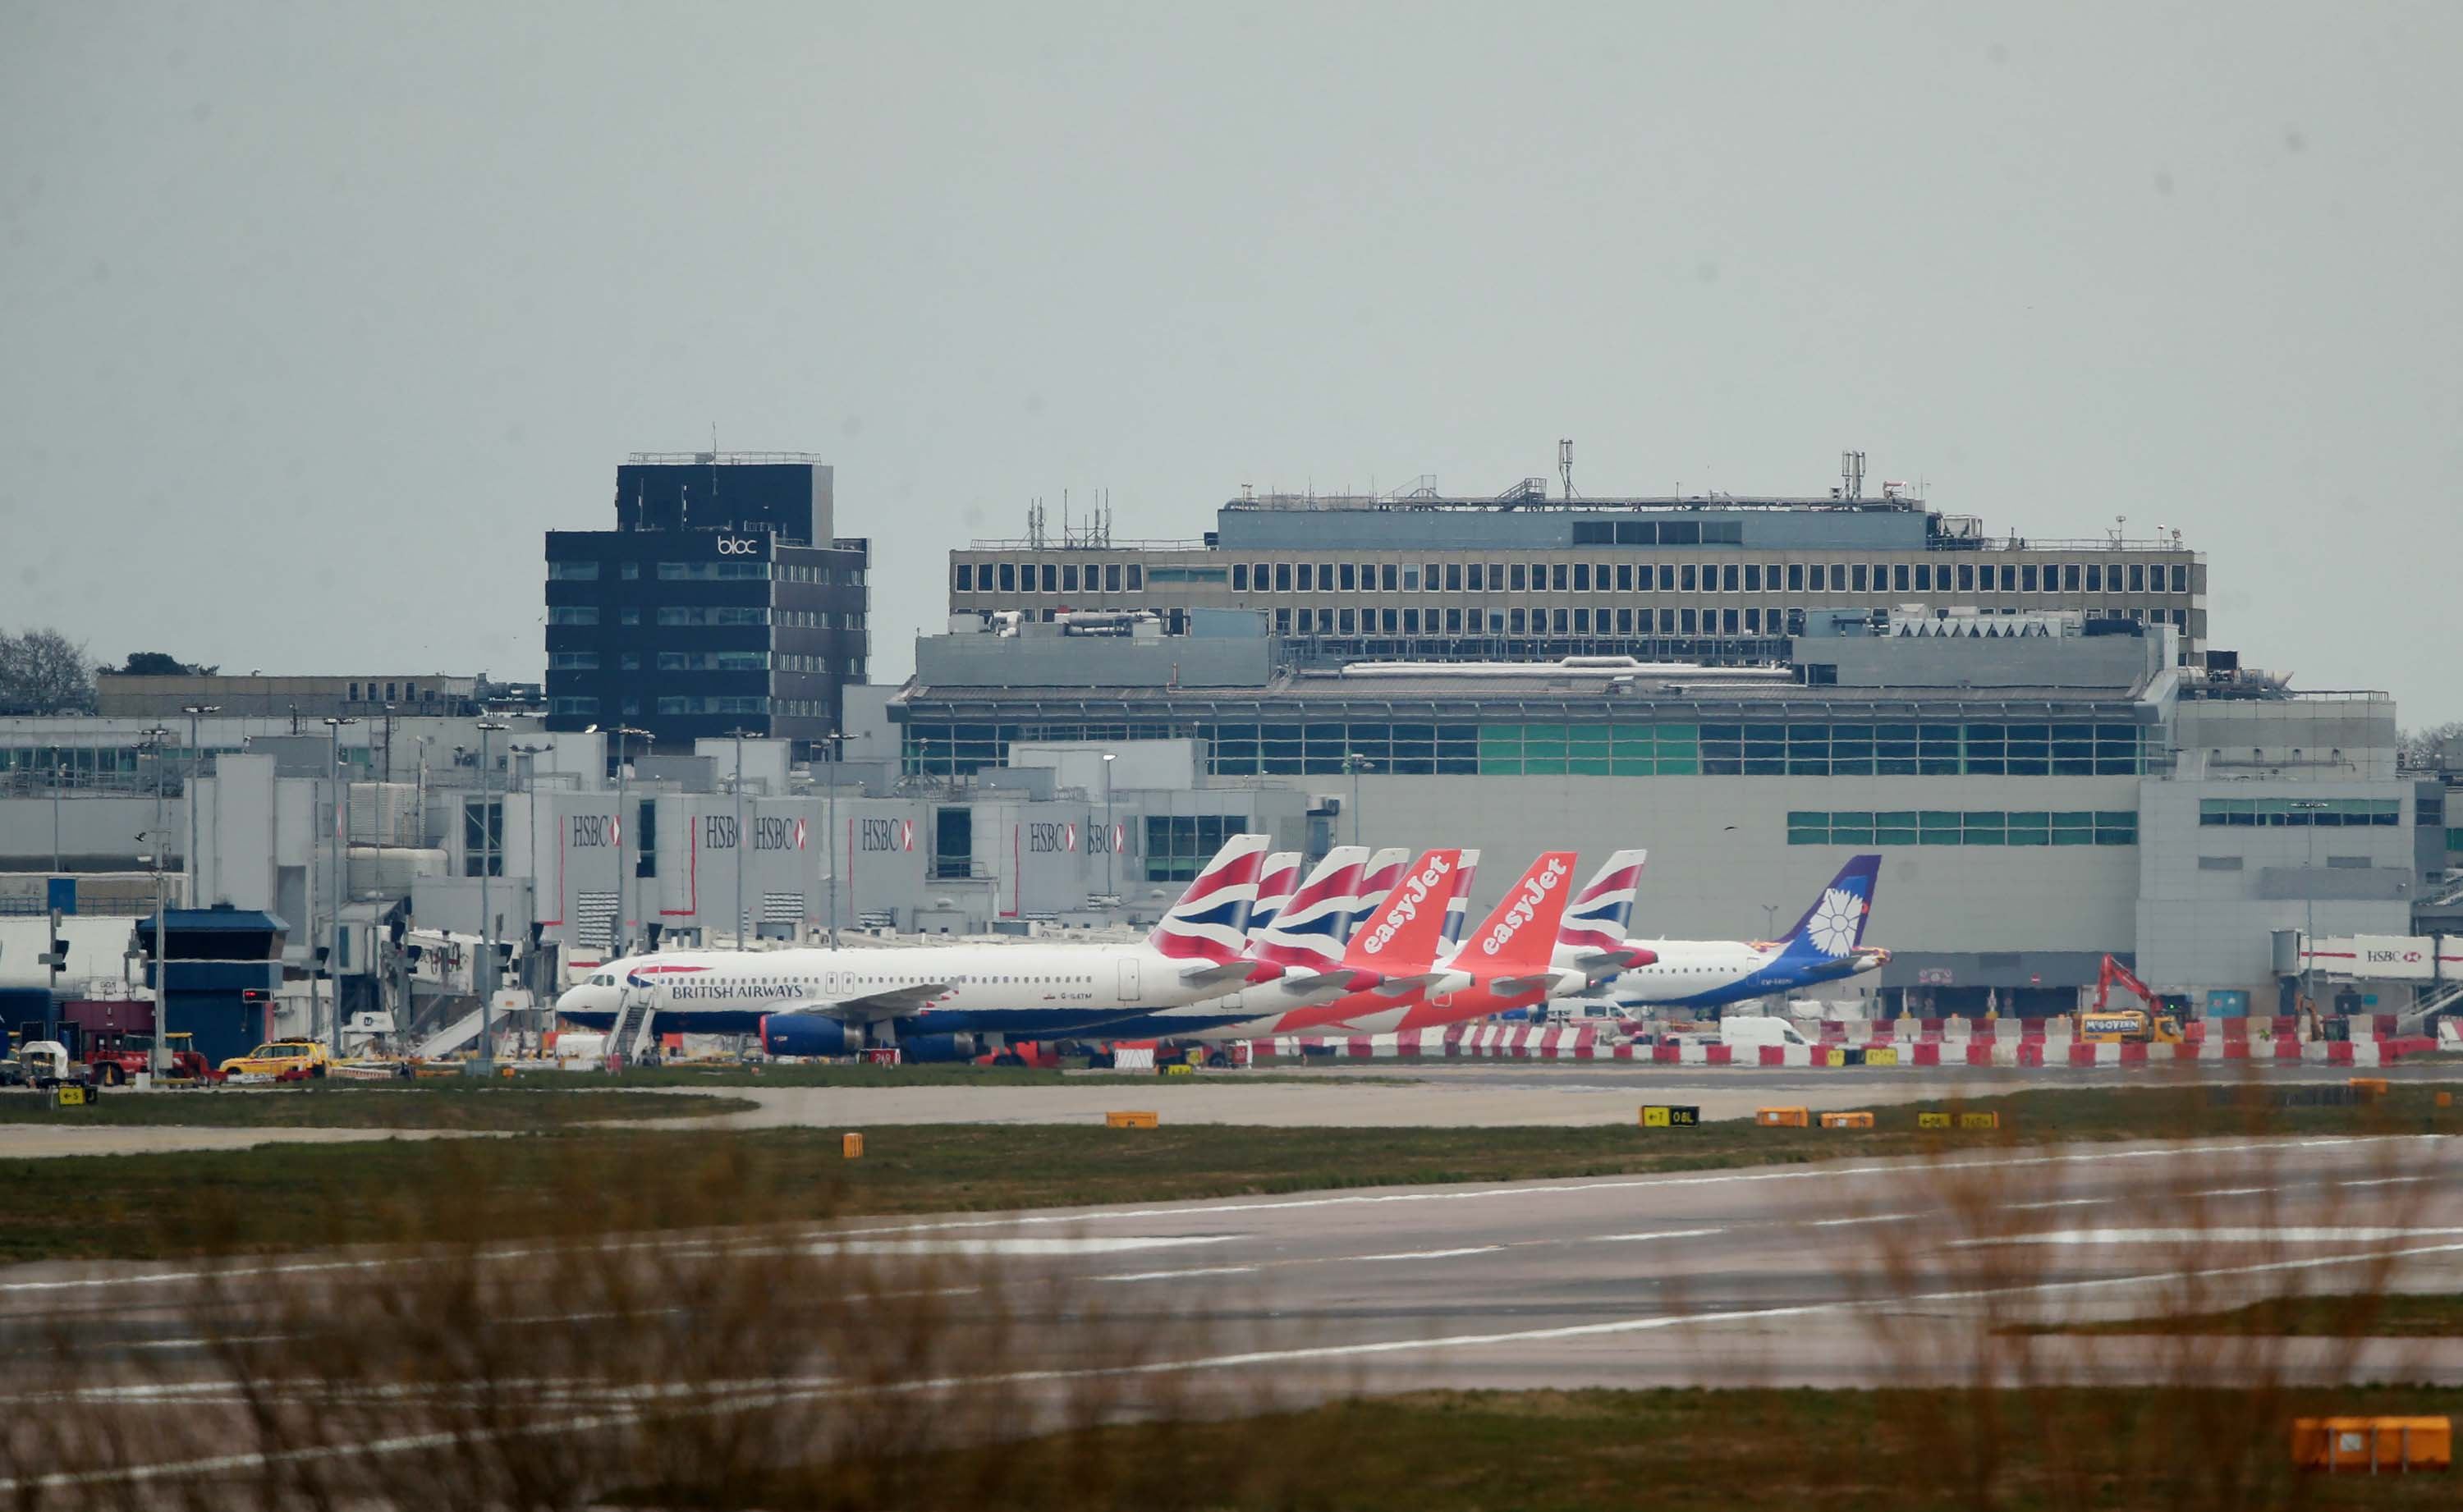 British Airways and easyJet planes are seen parked at Gatwick Airport in Crawley, England, on March 29.